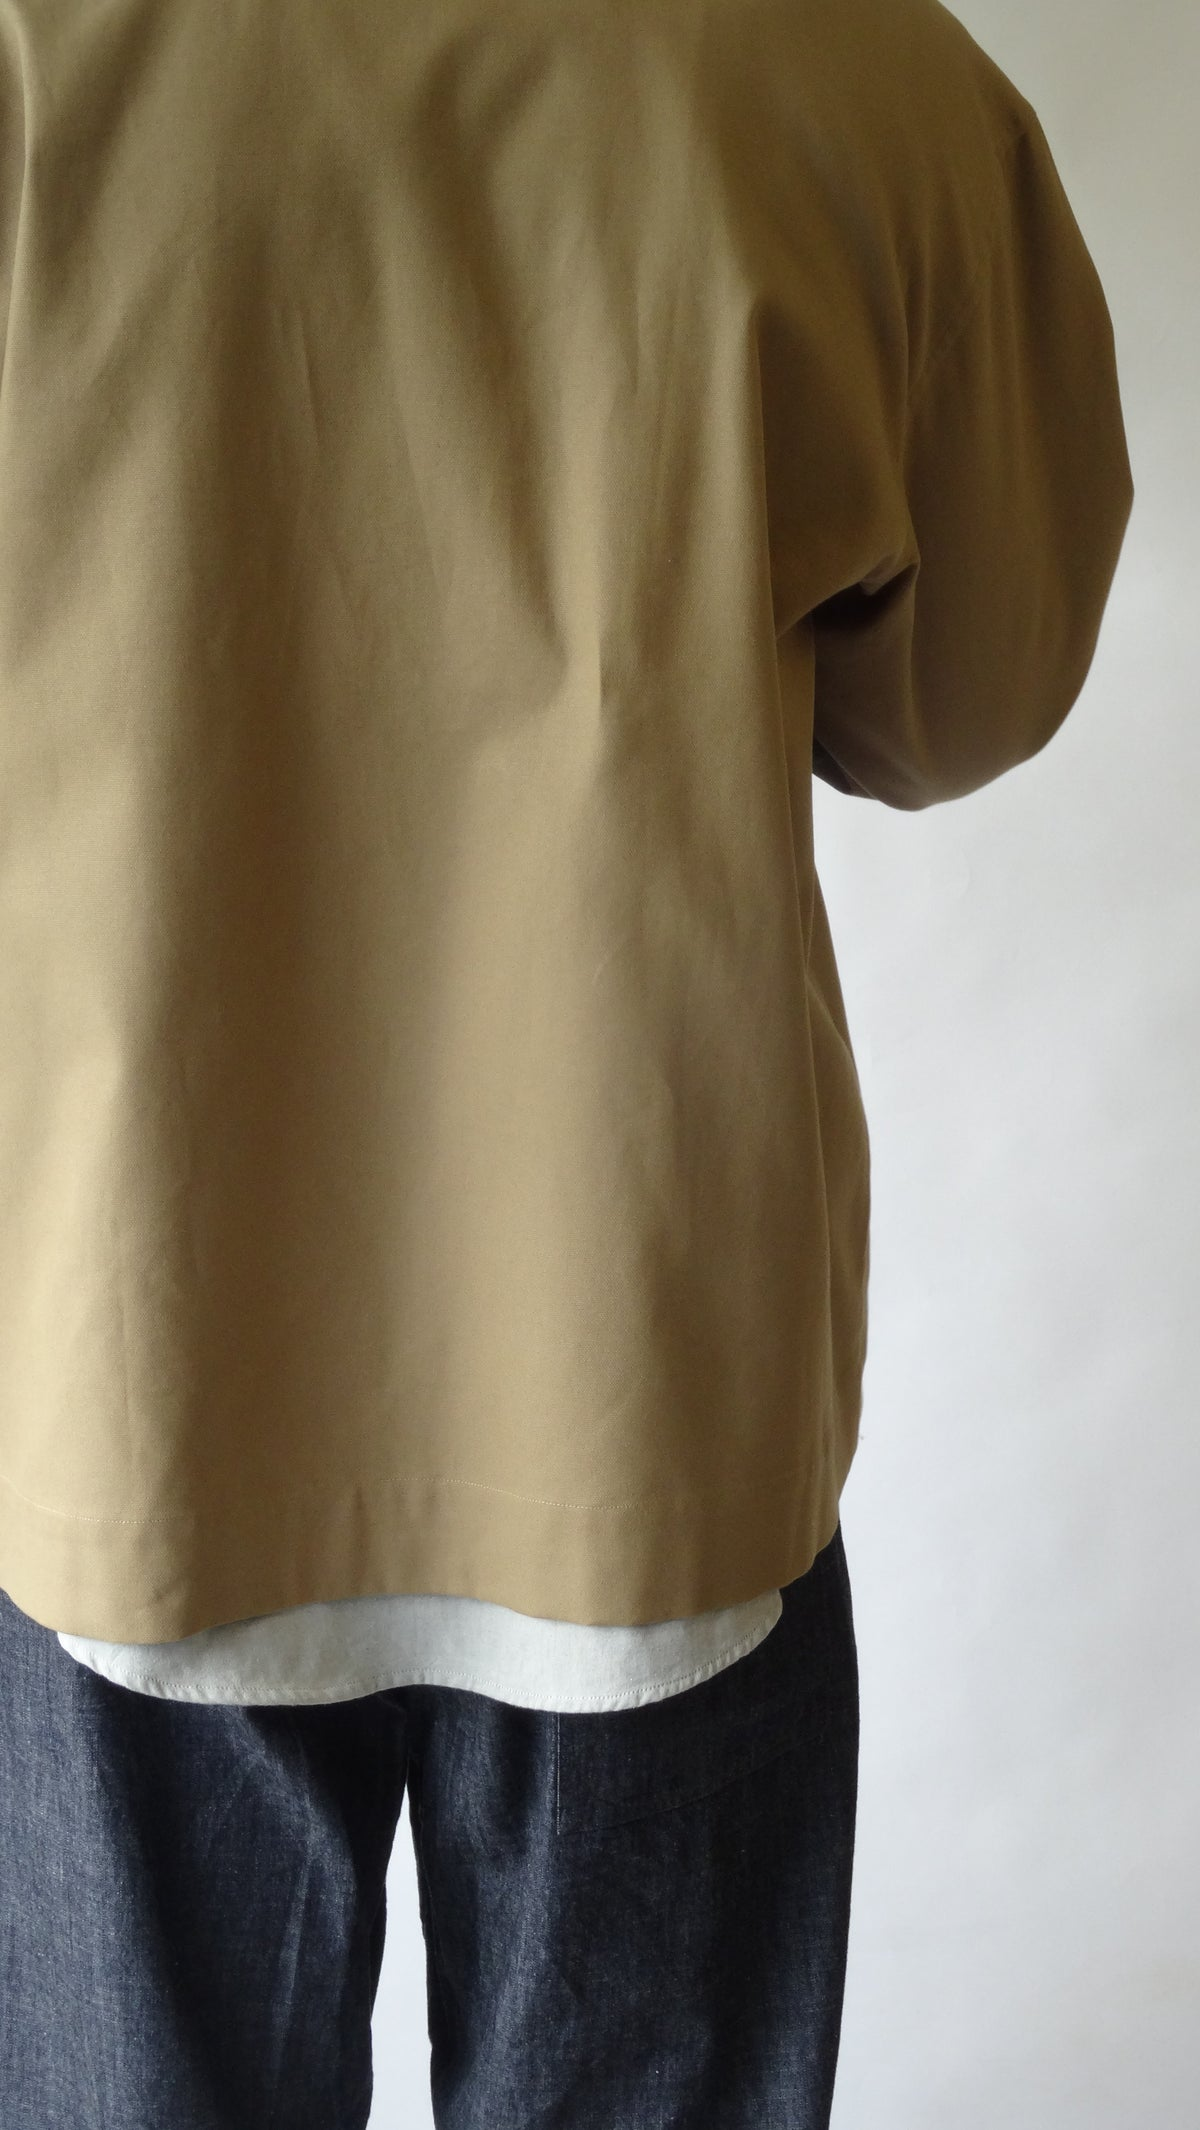 menswear loose fitting workers jacket in beige cotton canvas